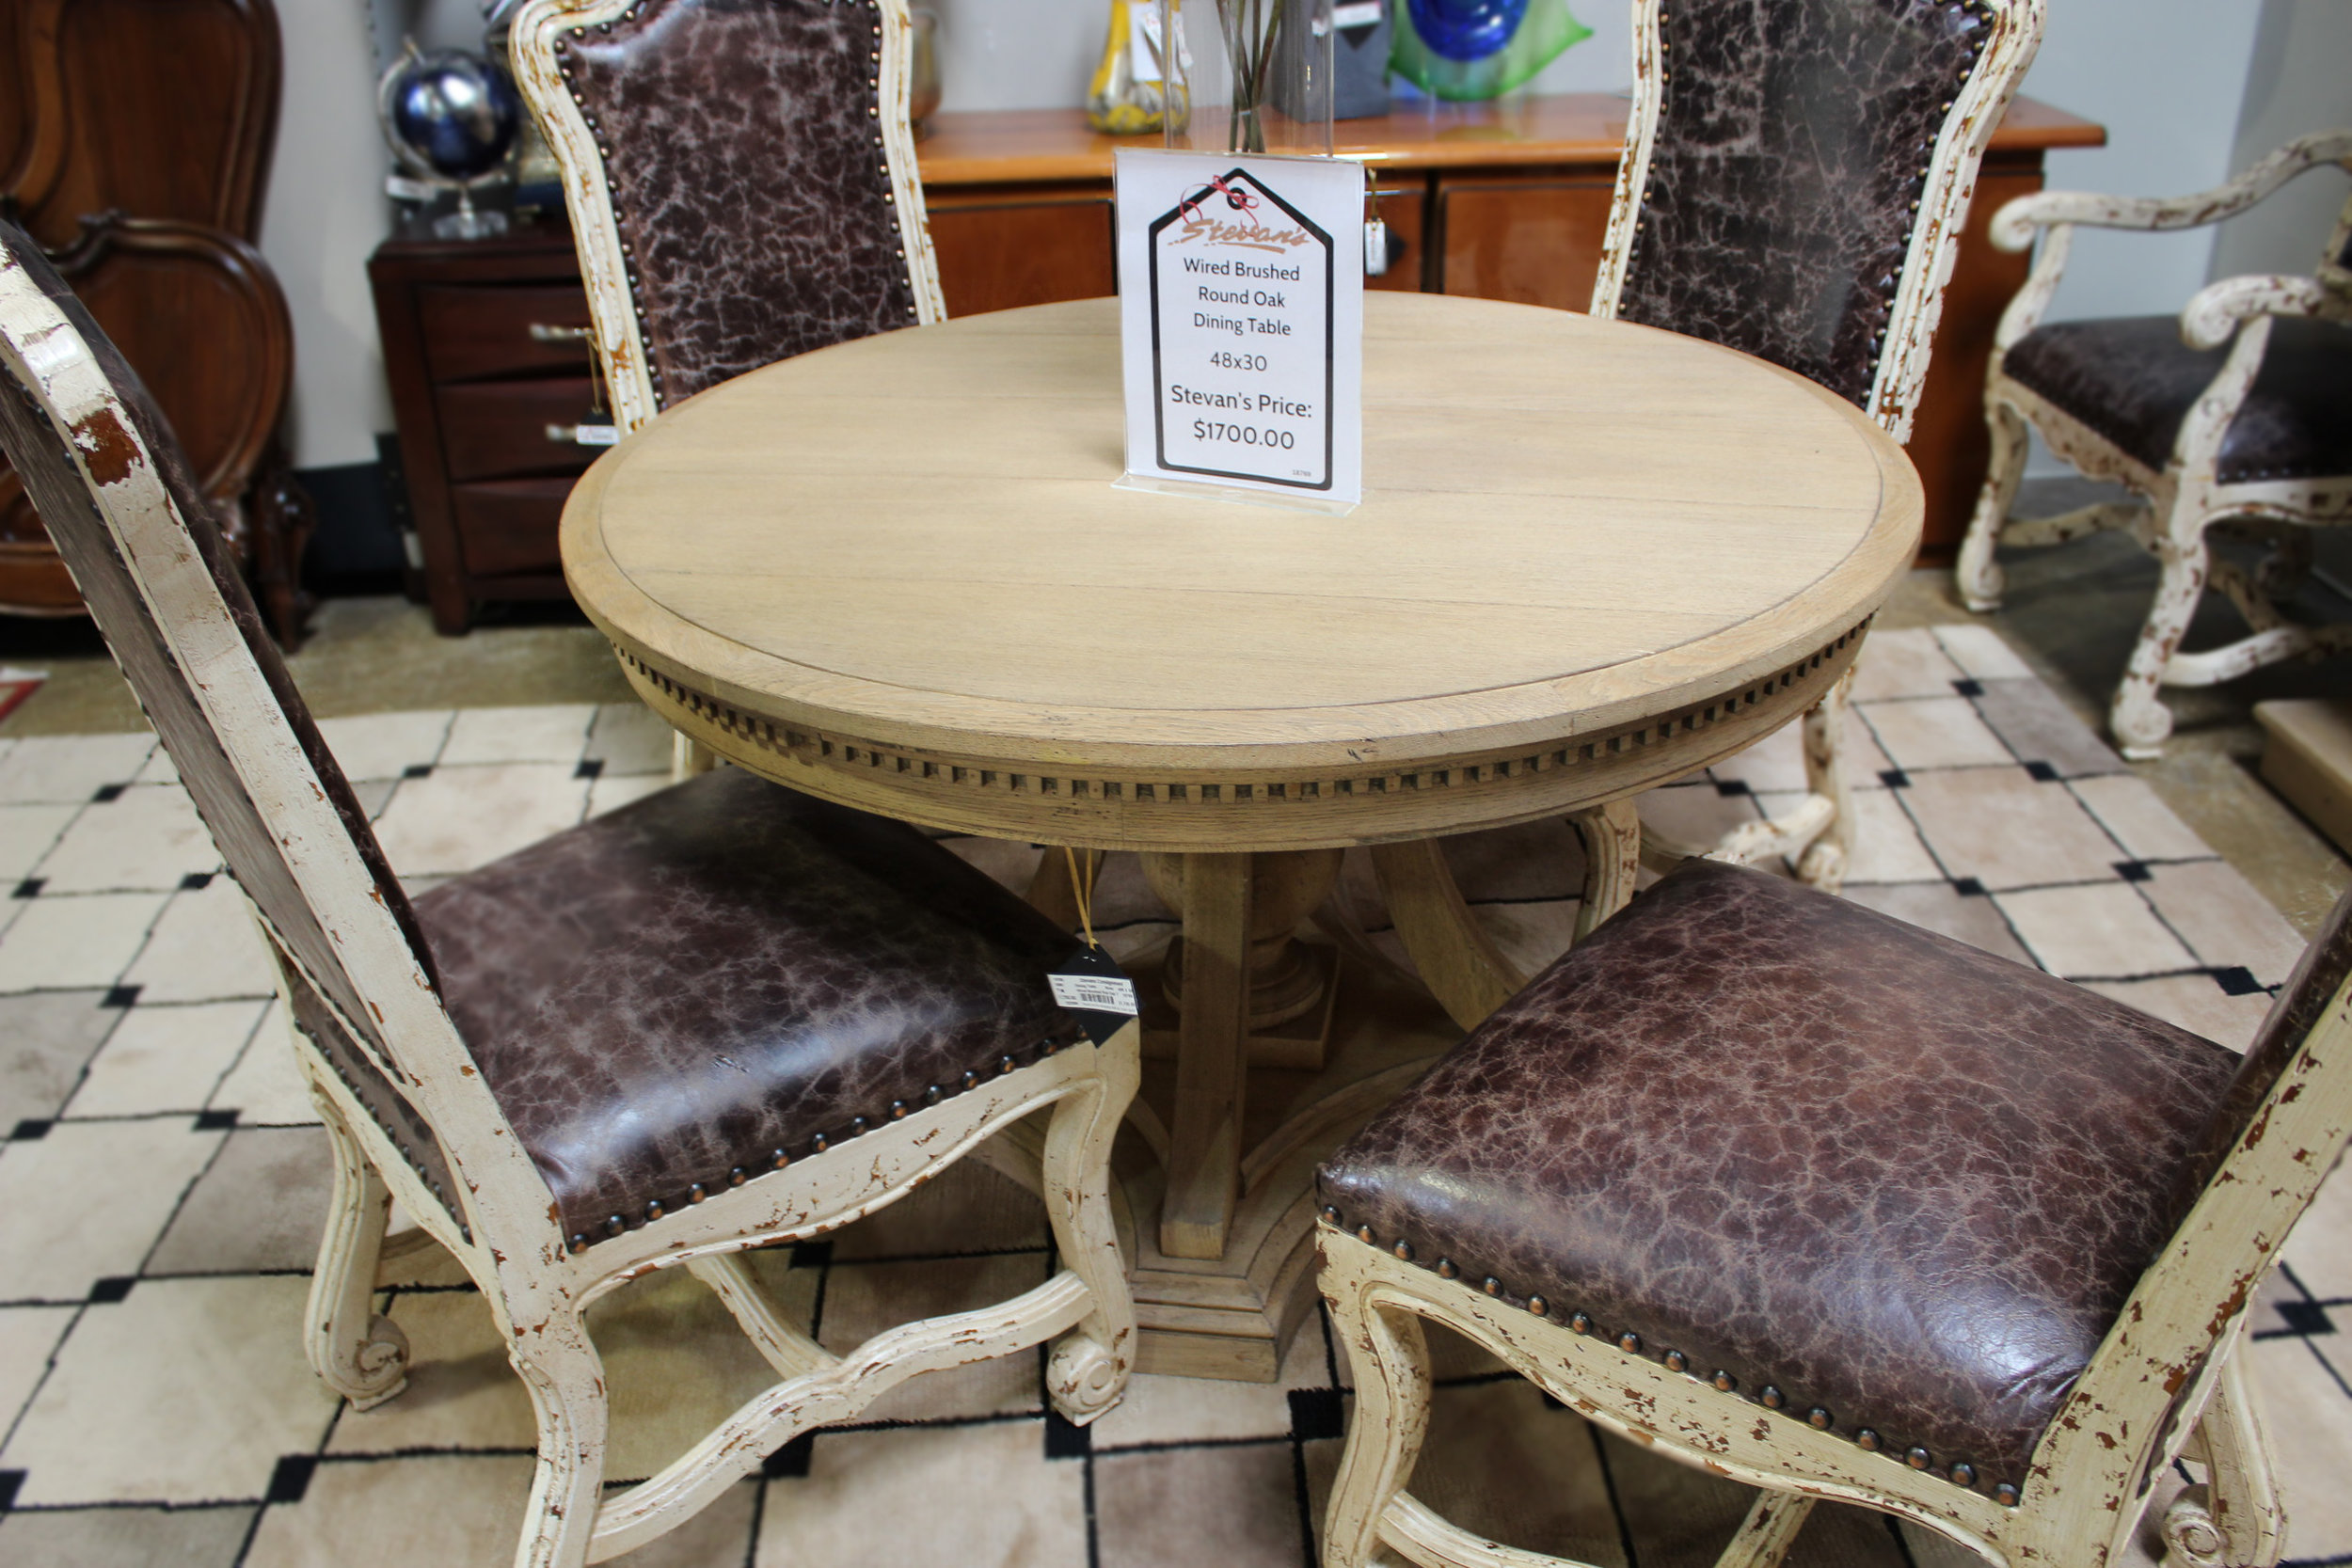 Wired Brushed Round Oak Dining Table